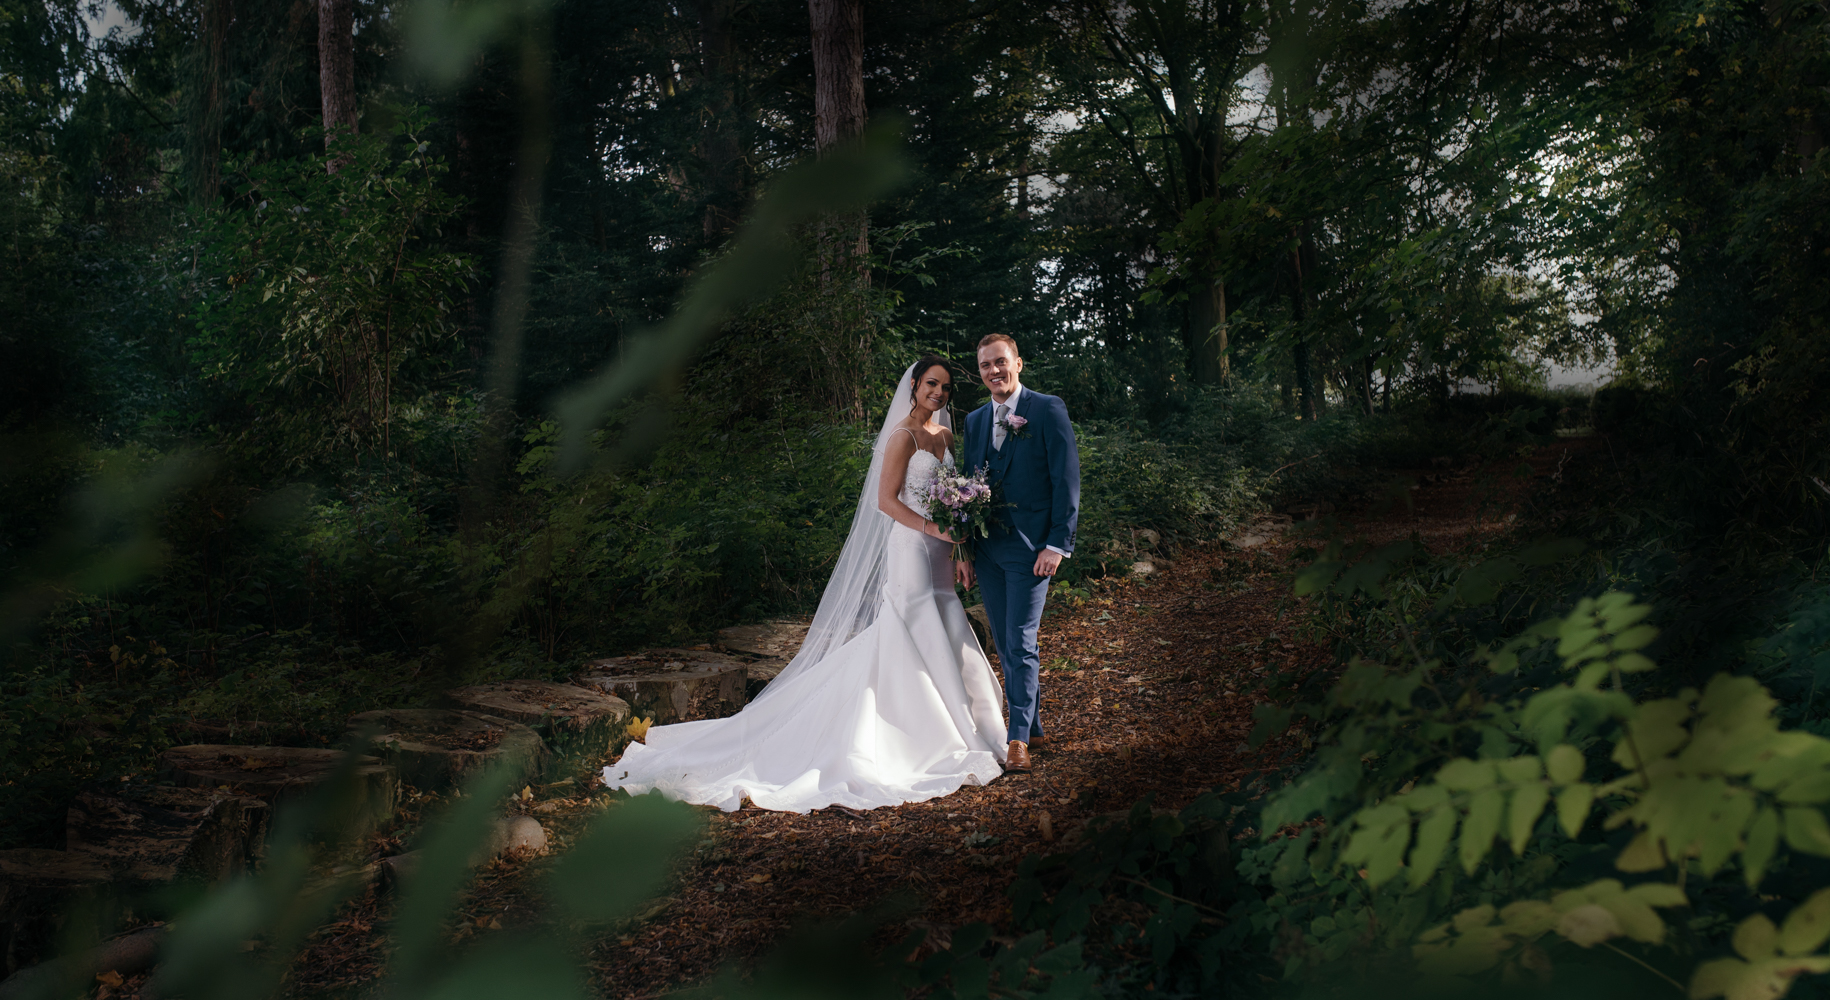 Lovely image of the bride and groom taken in the woods at Inglewood Manor